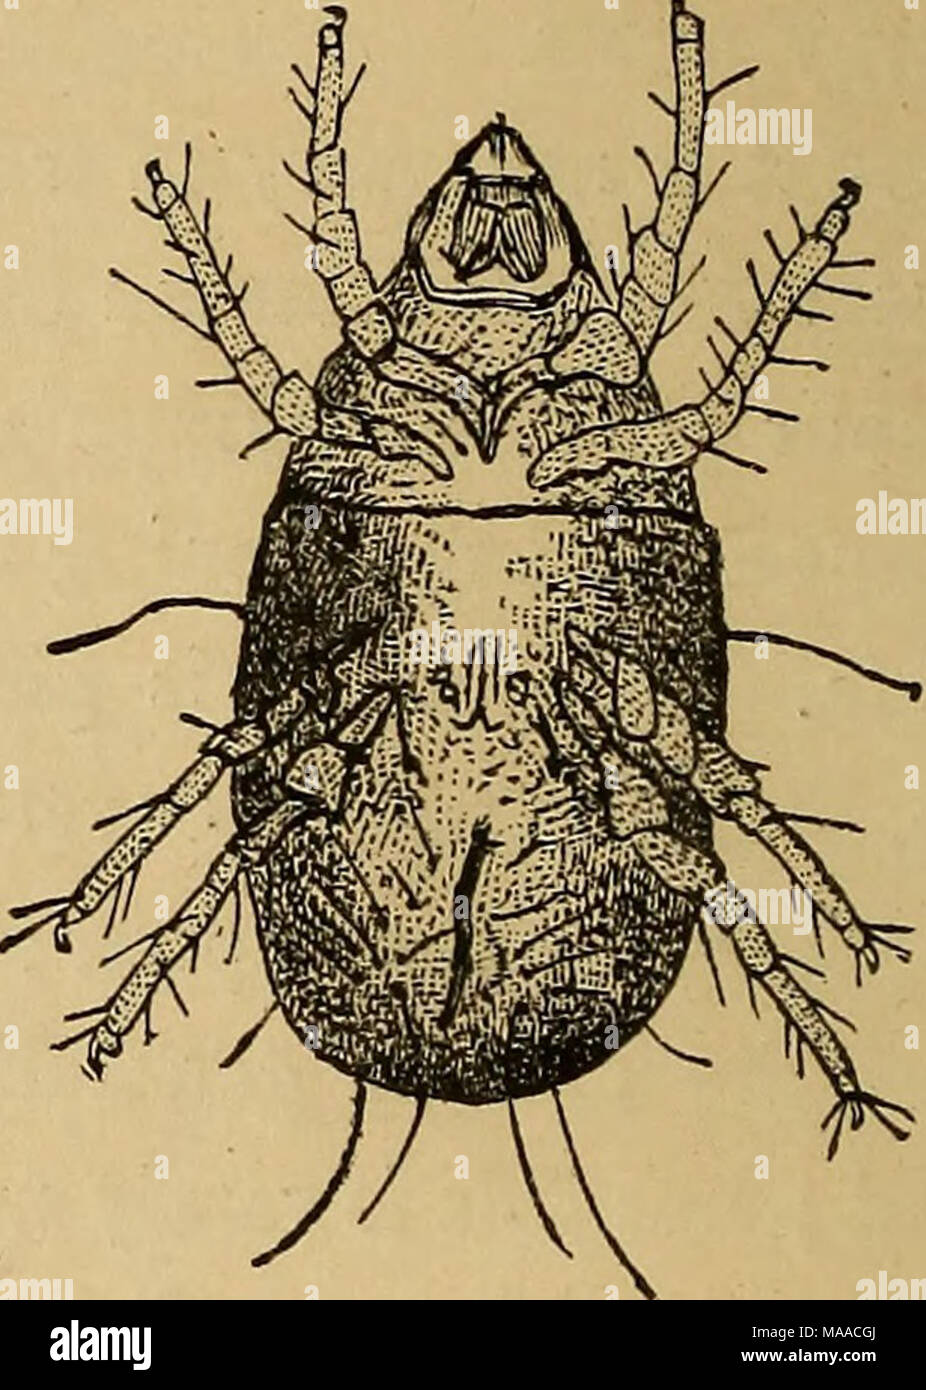 . Economic entomology . Tryoglyphus siro, slightly magnified Ditto, more highly magnified. Copied from Robins' figure. It is unnecessary to give any description of the mite. The small figure will give a fair idea of its general aspect, and the larger one will supply the place of a description. As to its habits and mode of life, there is little to add to what every one knows. It lives in almost every kind of cheese when a little decayed, and especially the harder parts. The individuals gather together in winter in groups or heaps in the hollows and chinks of the cheese and there remain motionle Stock Photo